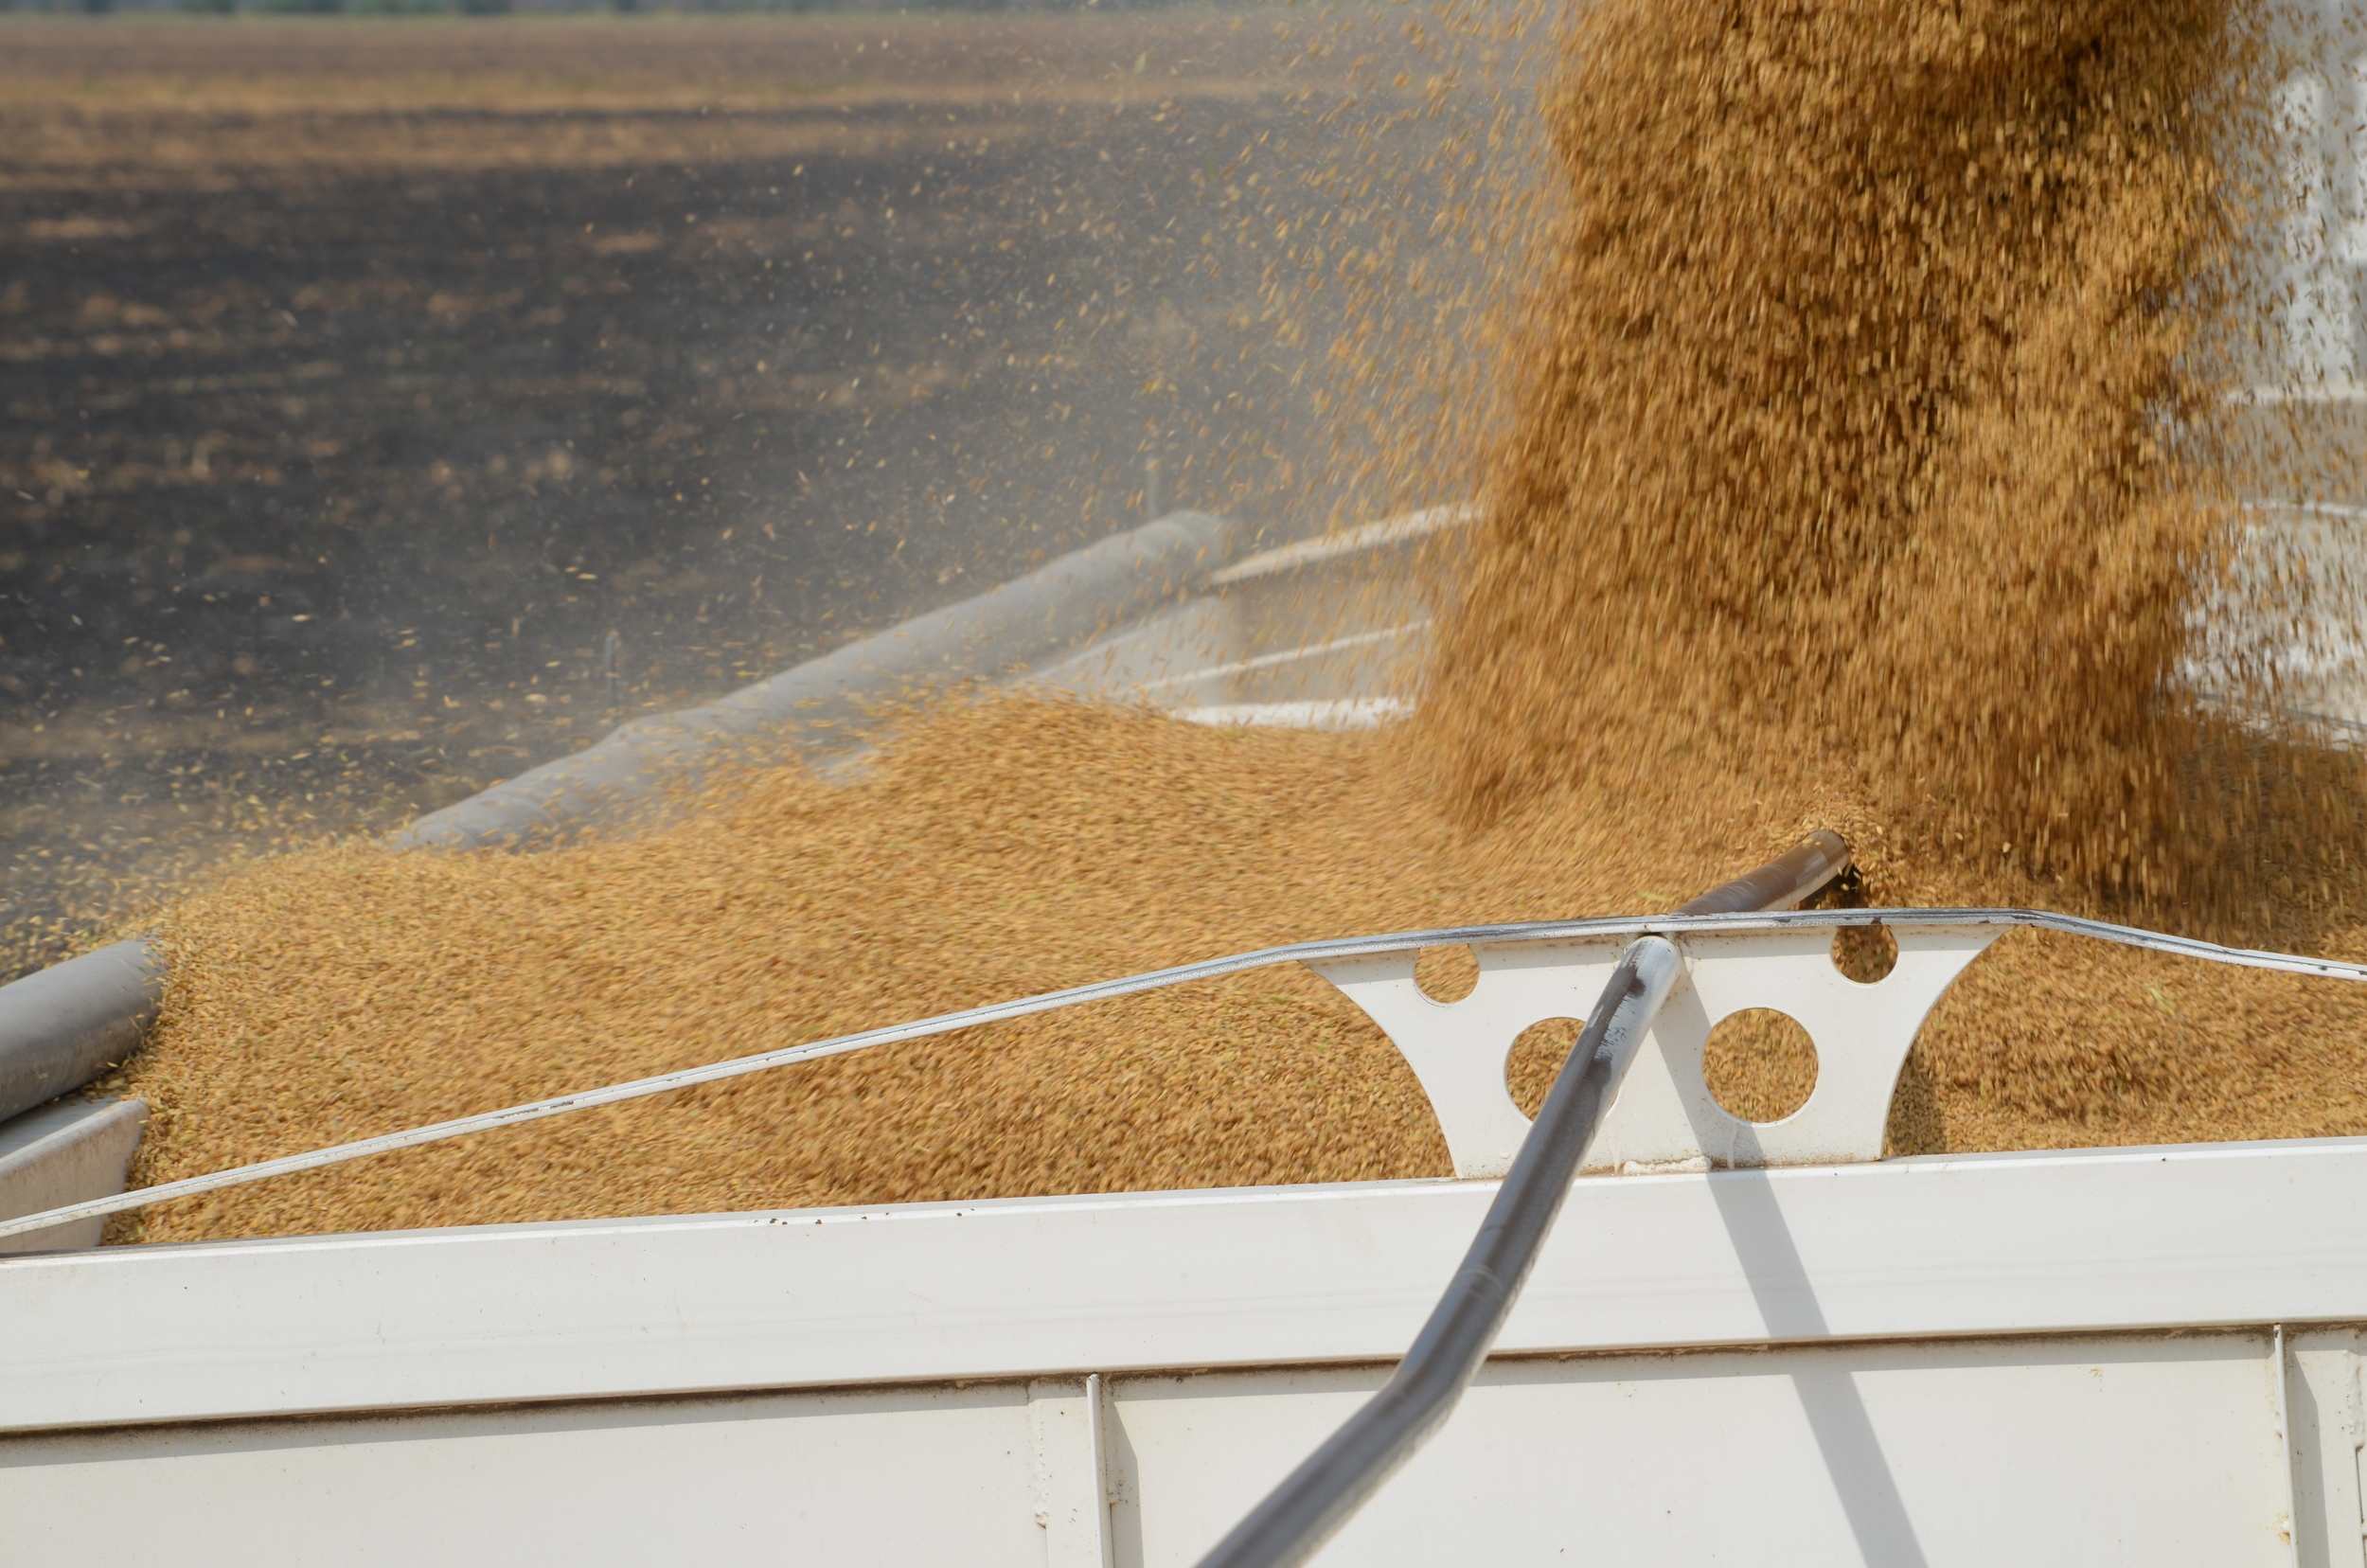 rice harvest: coming out of the field being transferred into a hauling truck